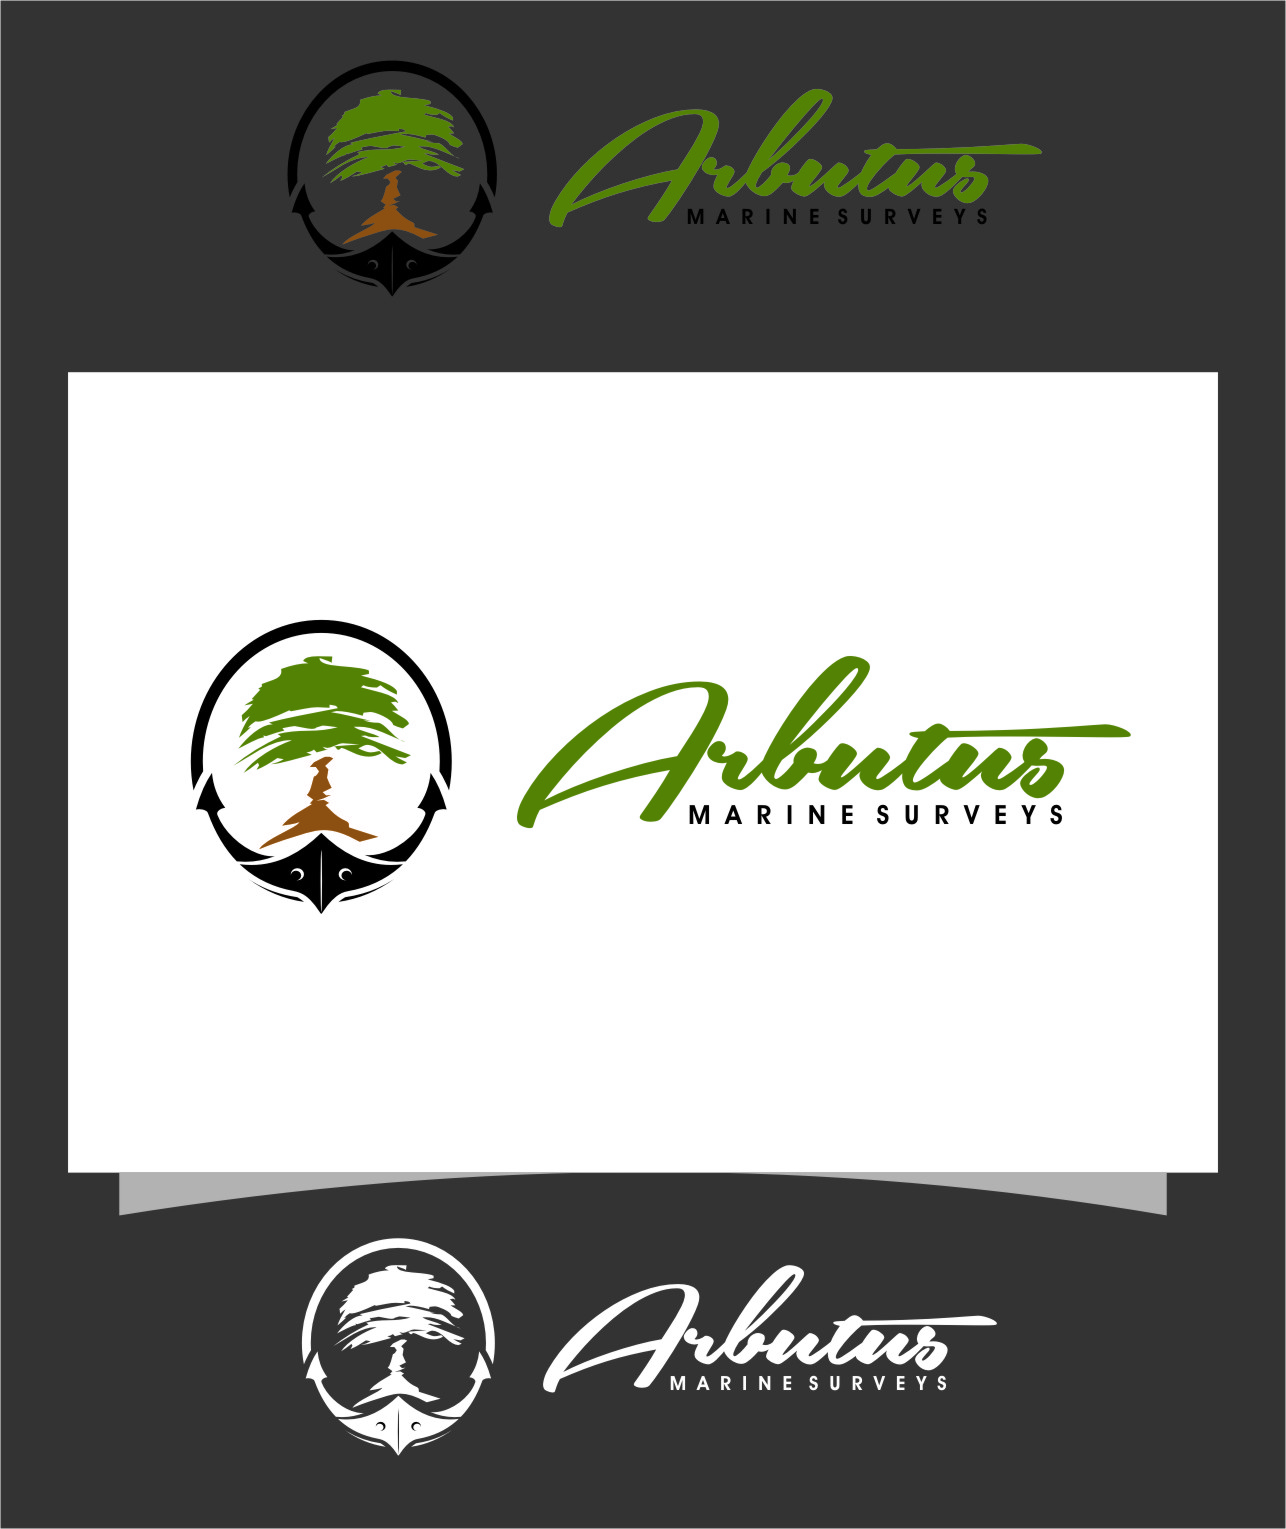 Logo Design by Ngepet_art - Entry No. 41 in the Logo Design Contest Professional Business Logo Design for Arbutus Marine Surveys.